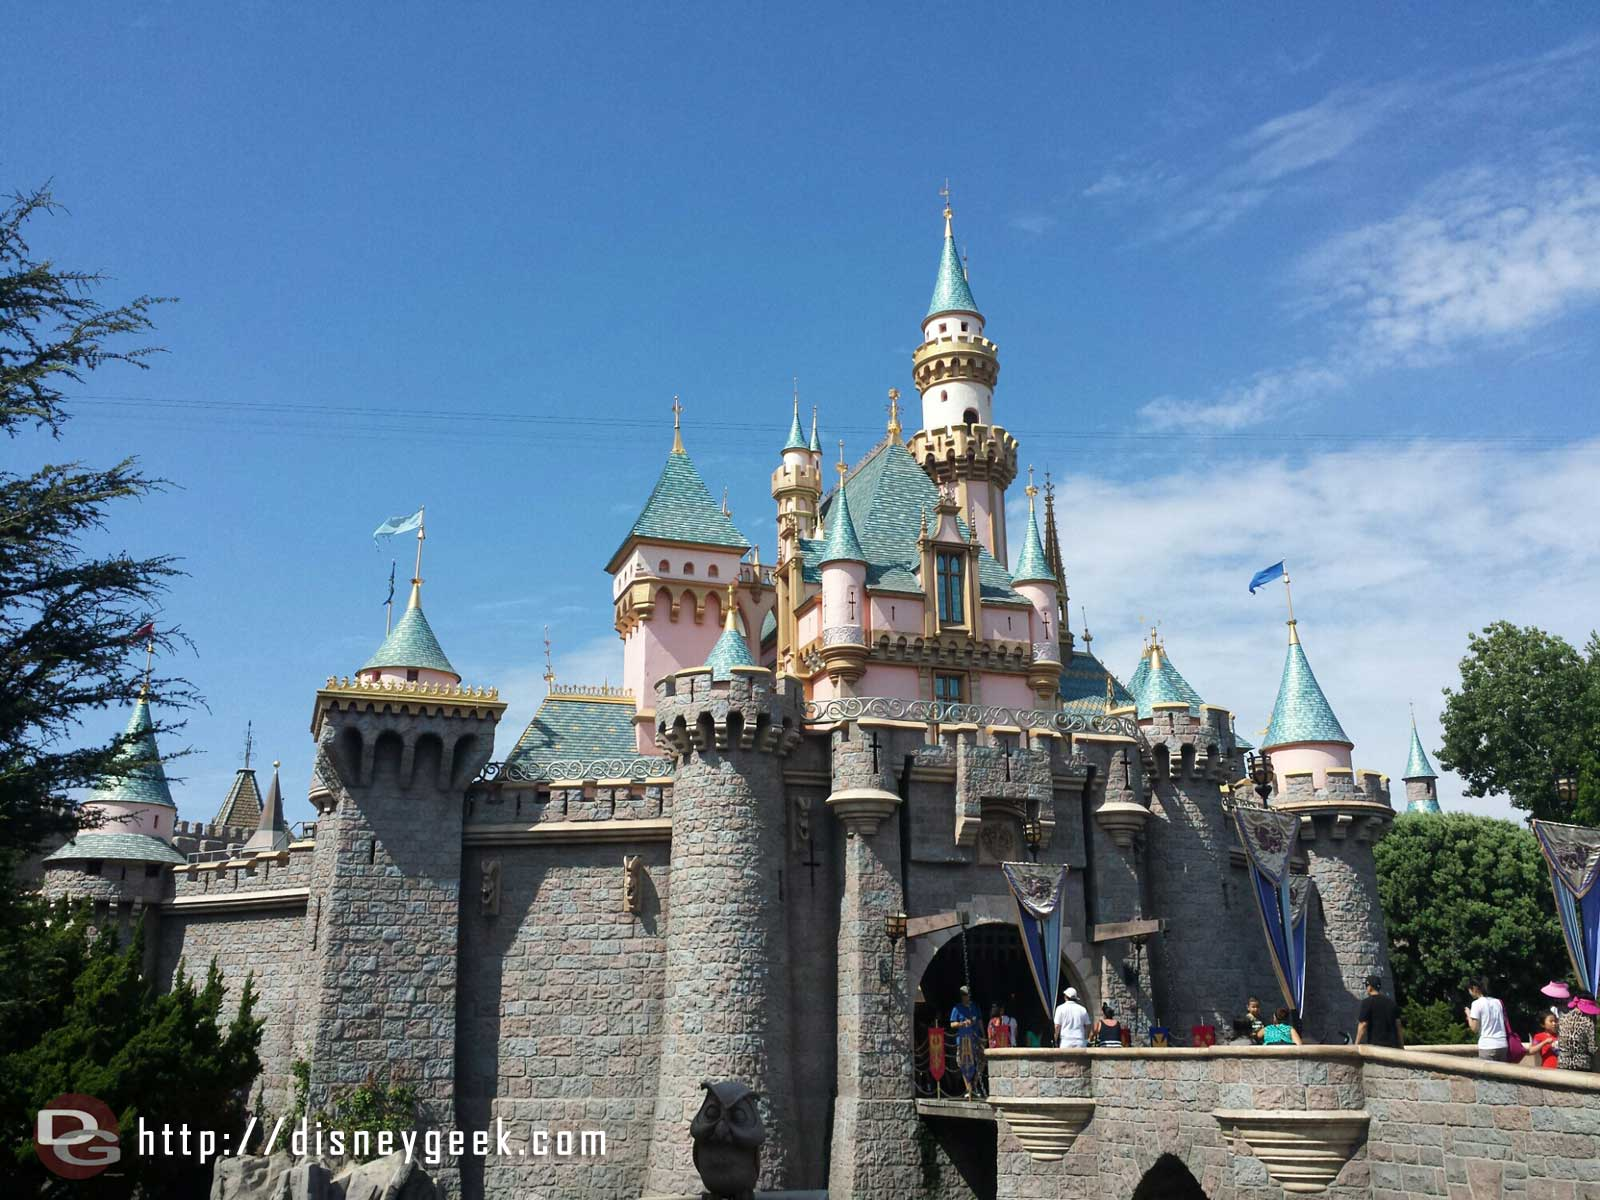 Sleeping Beauty Castle this afternoon #Disneyland